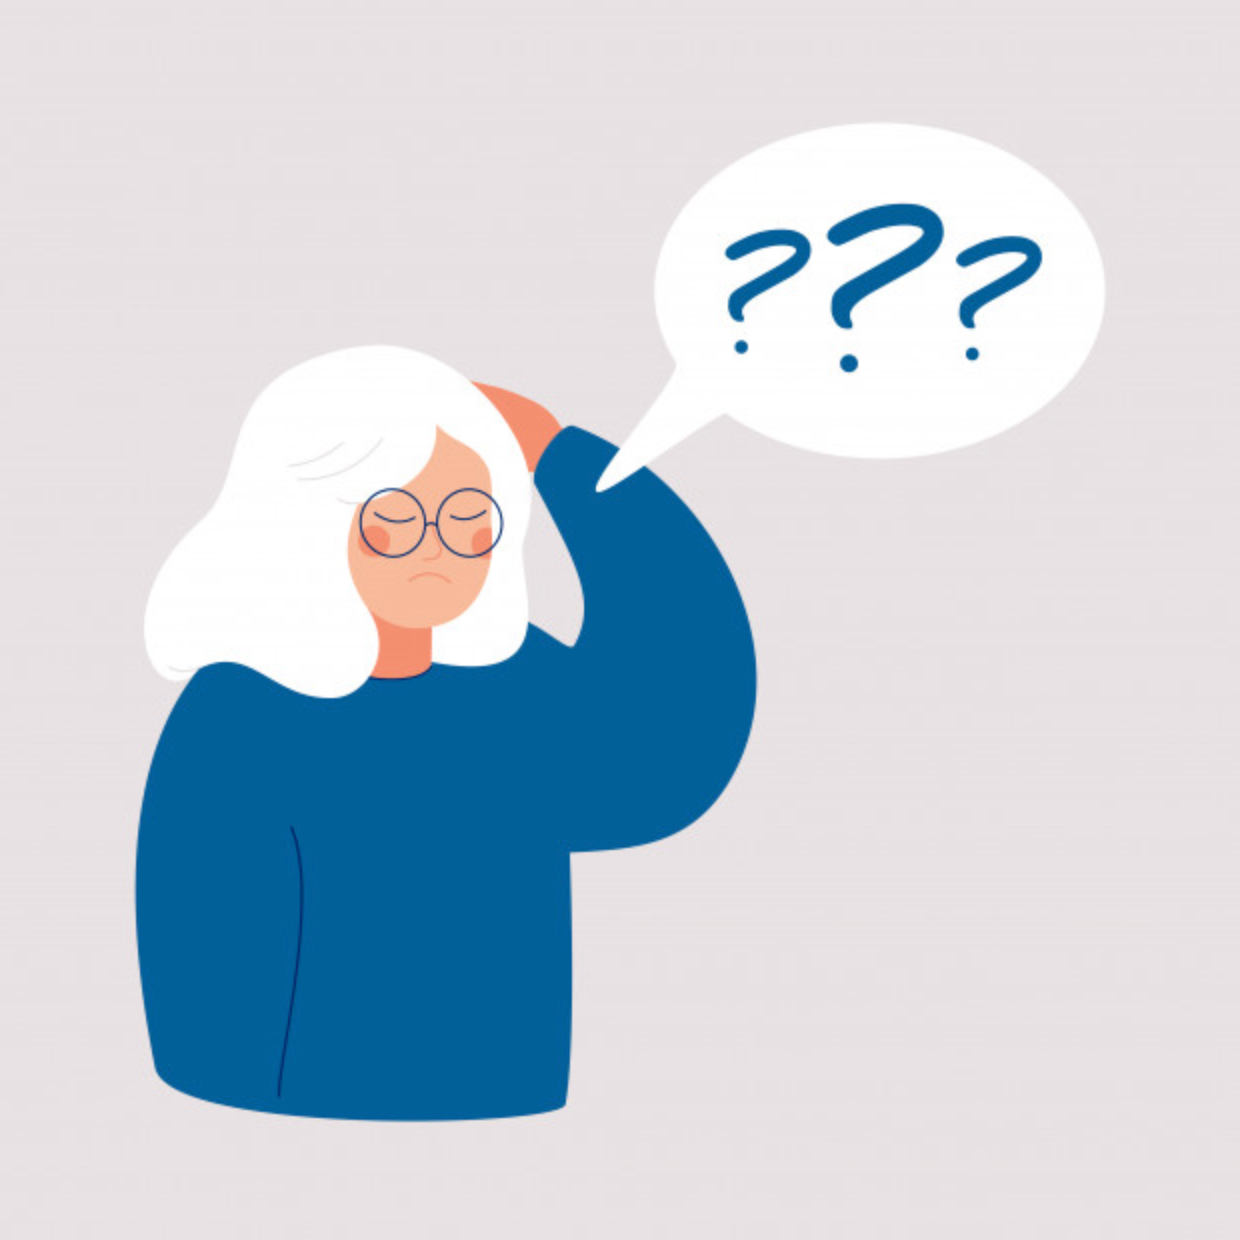 Illustration of an elderly woman with white hair thinking about things. She seems confused.